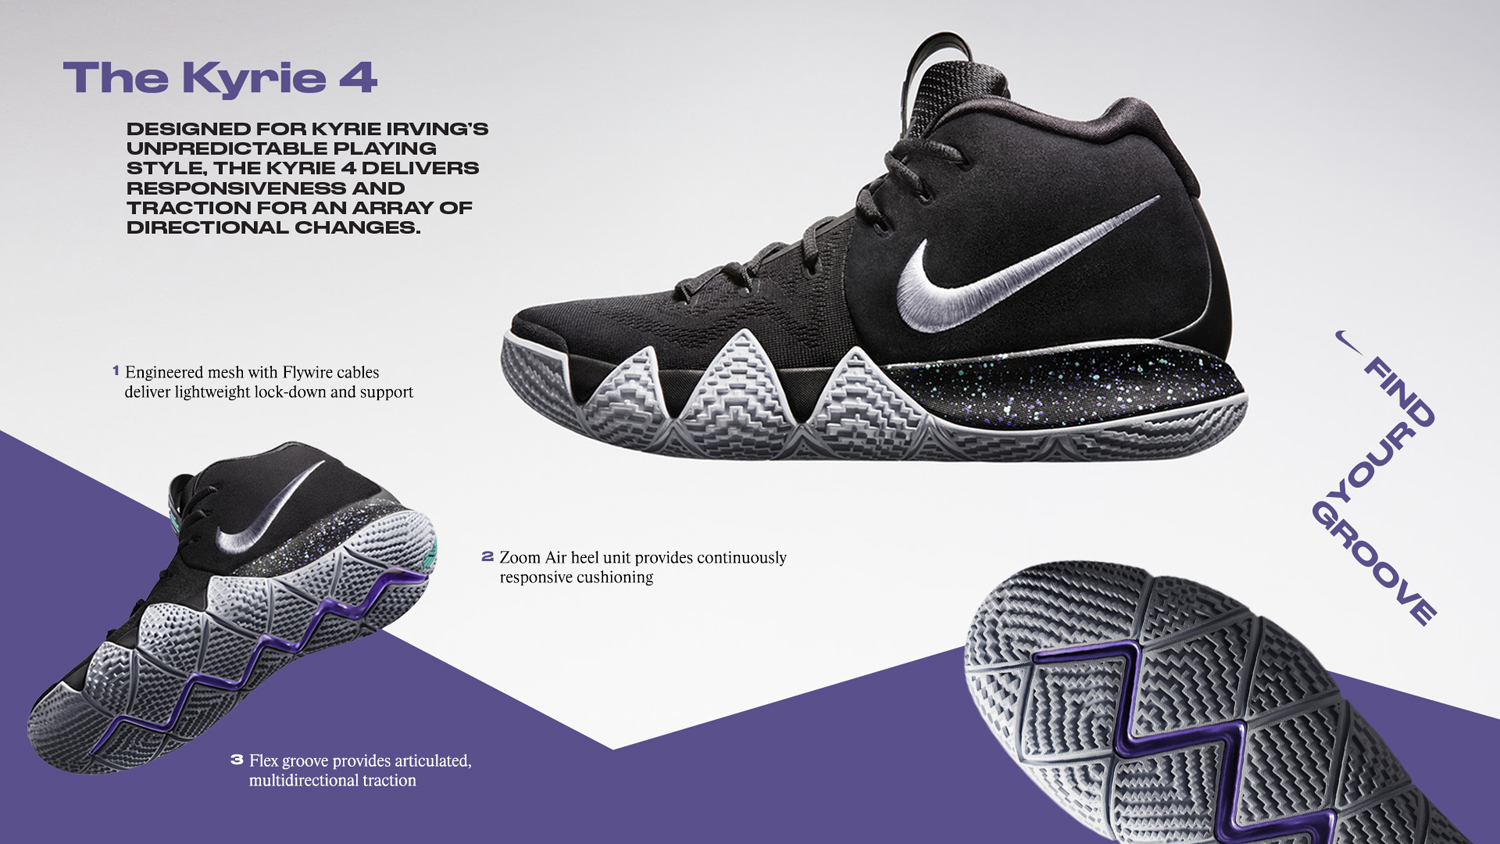 b16a2e69c620 Nike-Officially-Unveils-the-Kyrie-4-3 - WearTesters